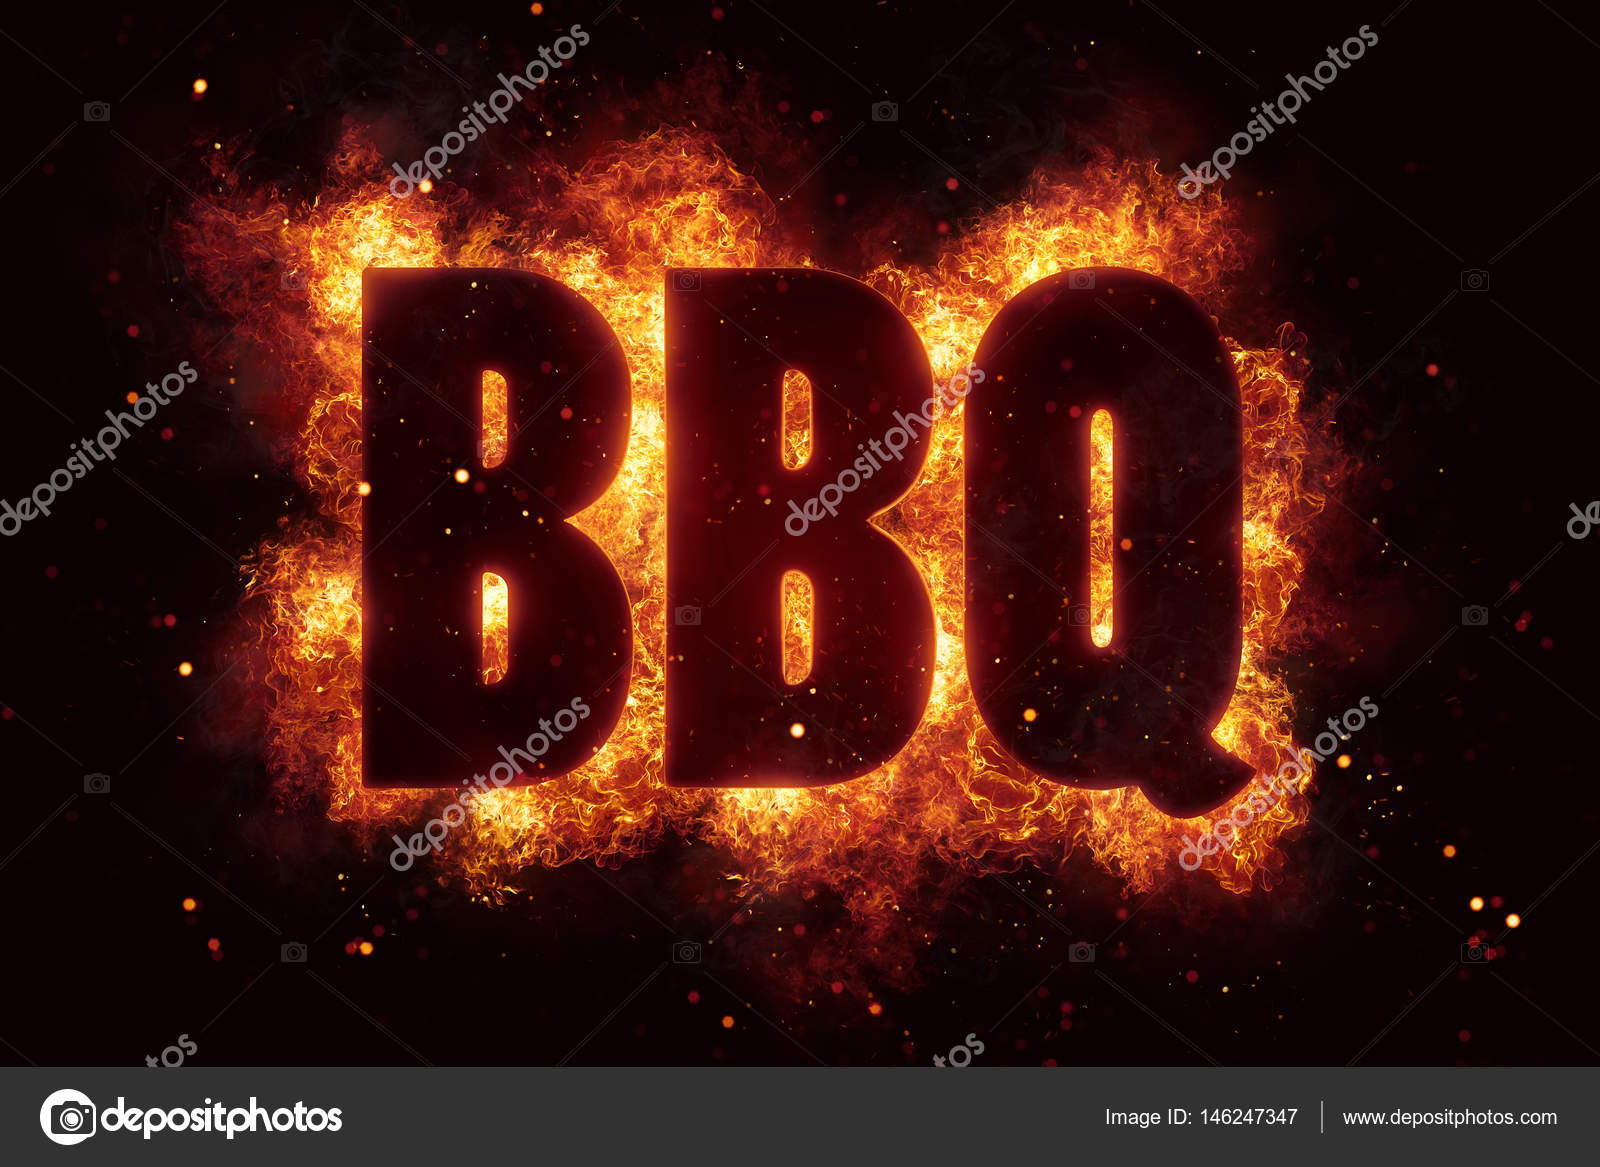 Bbq party text on fire flames explosion stock photo artefacti bbq party text on fire flames explosion explode photo by artefacti buycottarizona